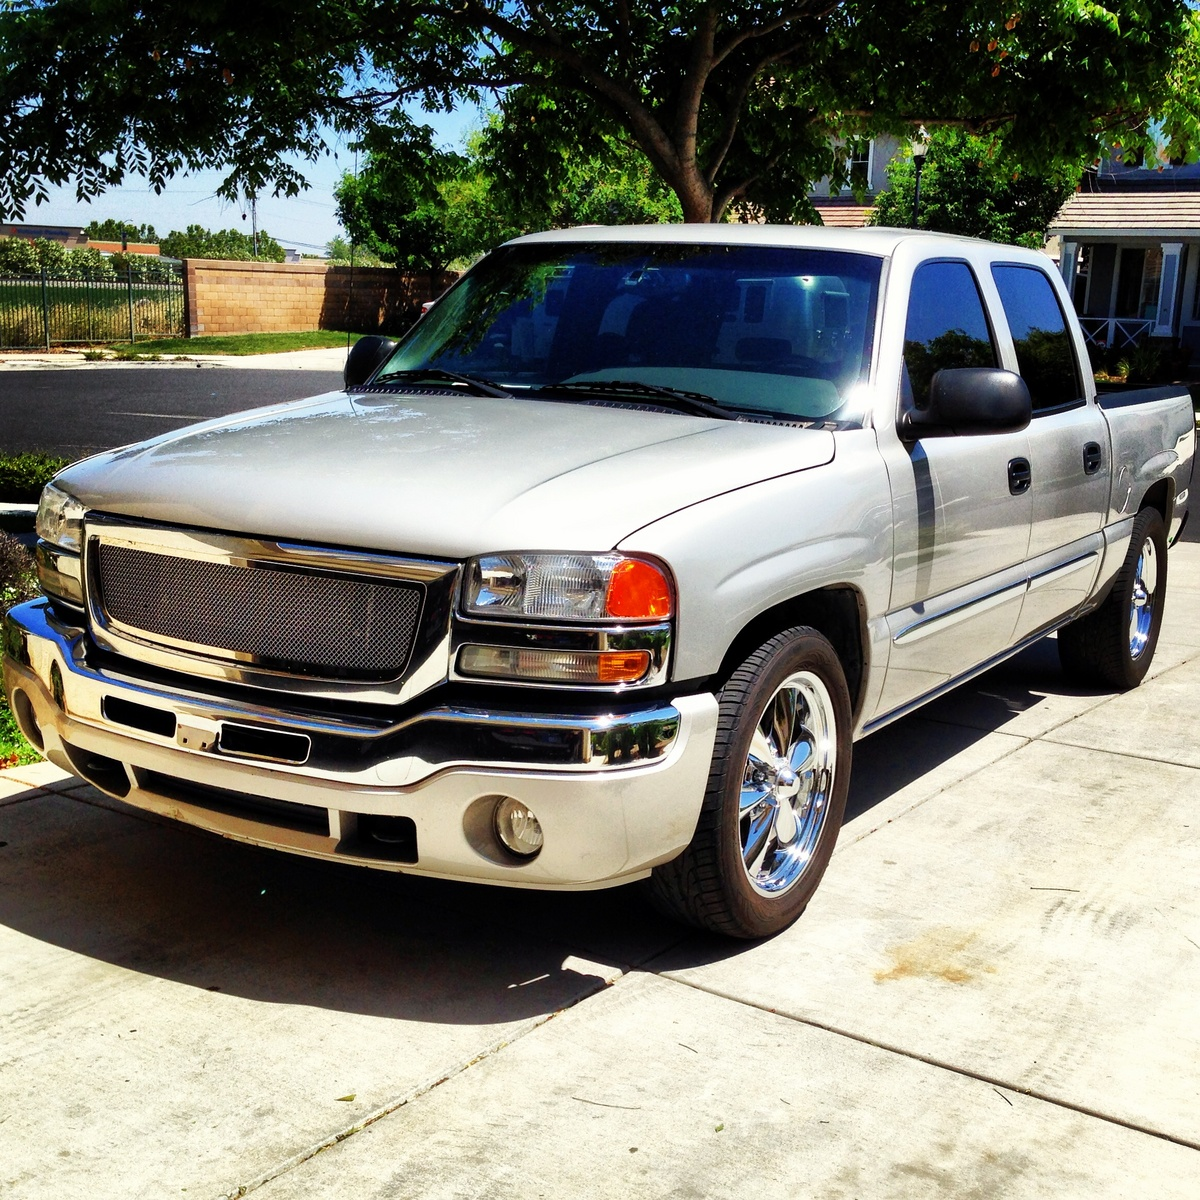 2007 Gmc Sierra Classic 3500 Extended Cab Transmission: 2007 GMC Sierra Classic 1500